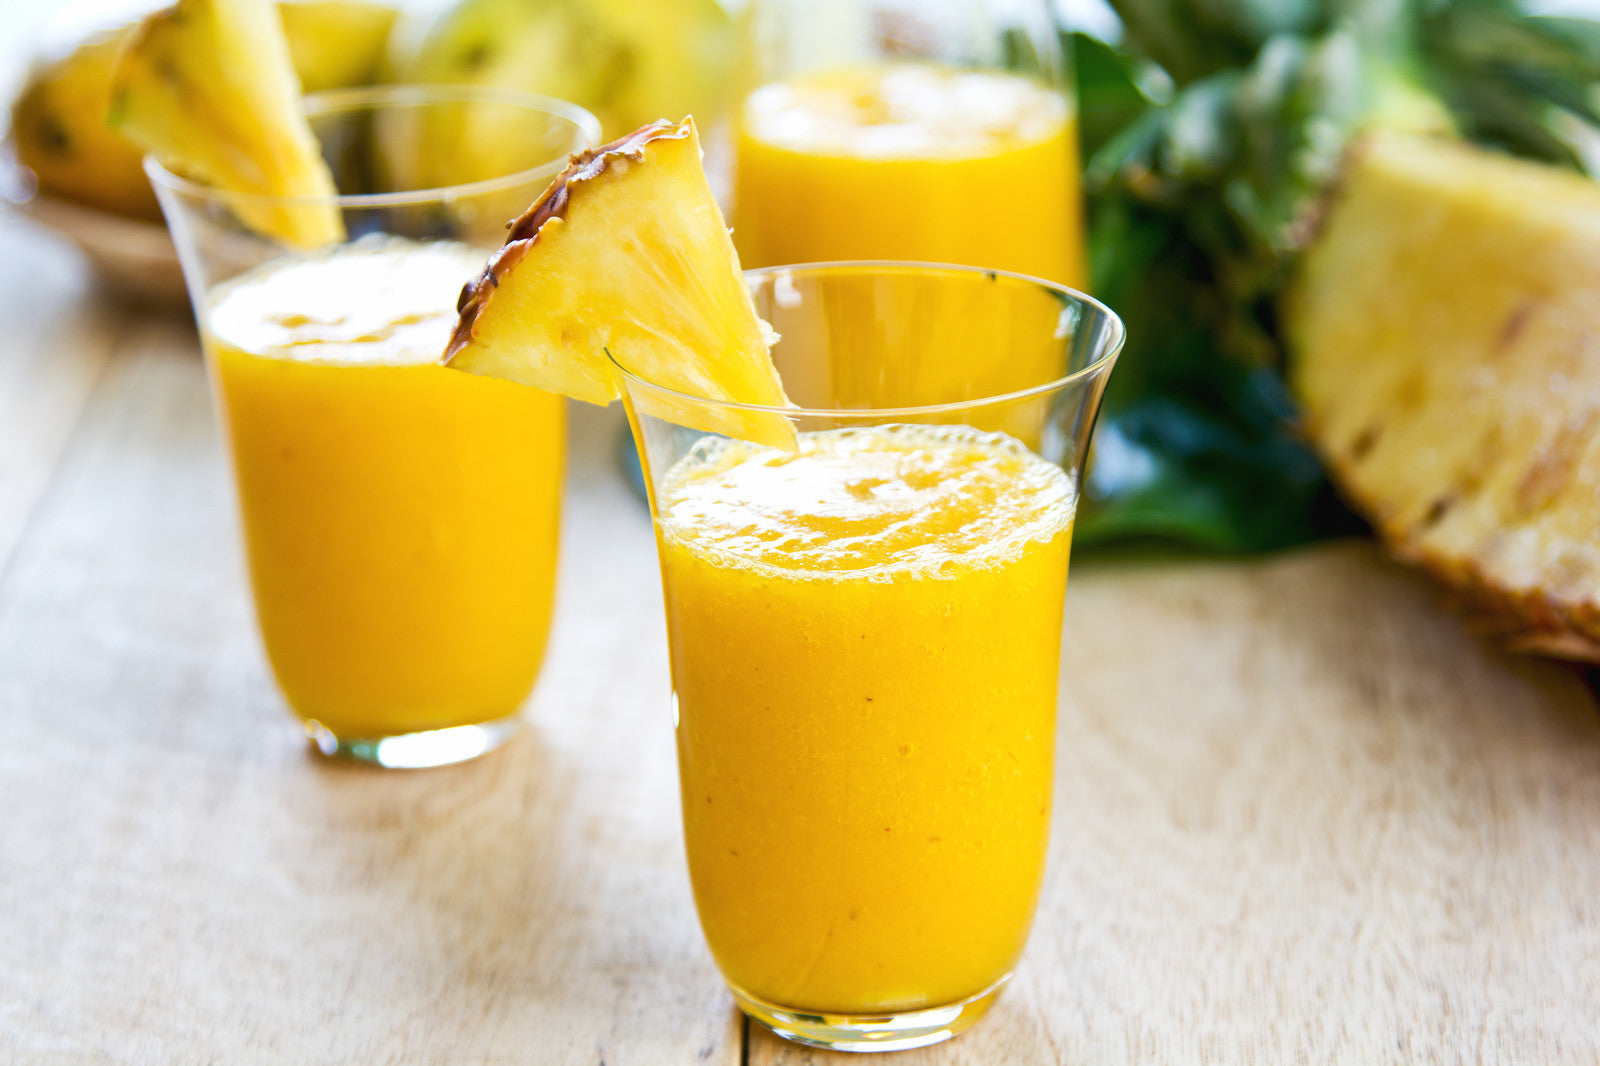 Mango Pineapple Smoothie with Coconut Milk